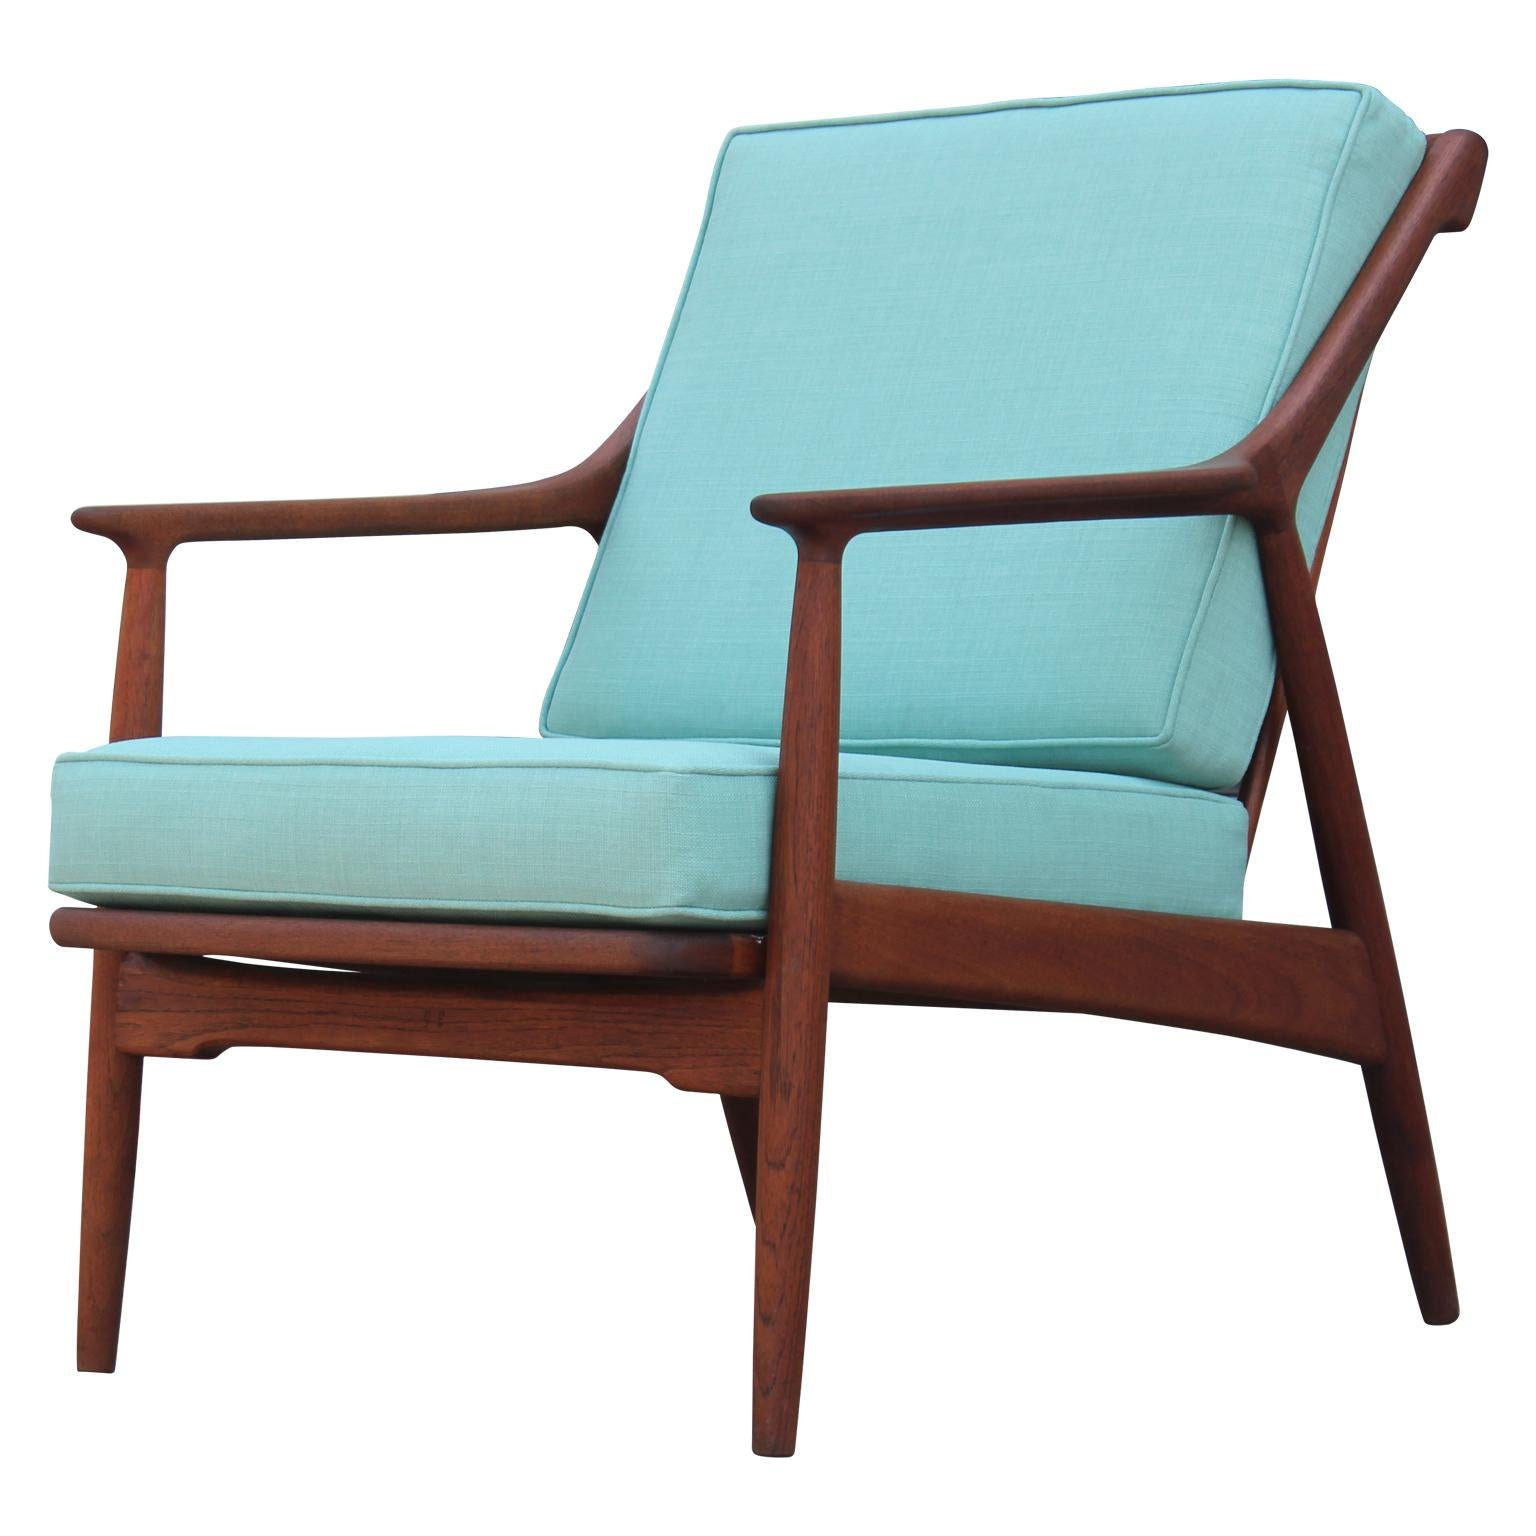 Modern Danish Teak Spindle Back Lounge Chair In Turquoise By Jason Ringsted  For Sale